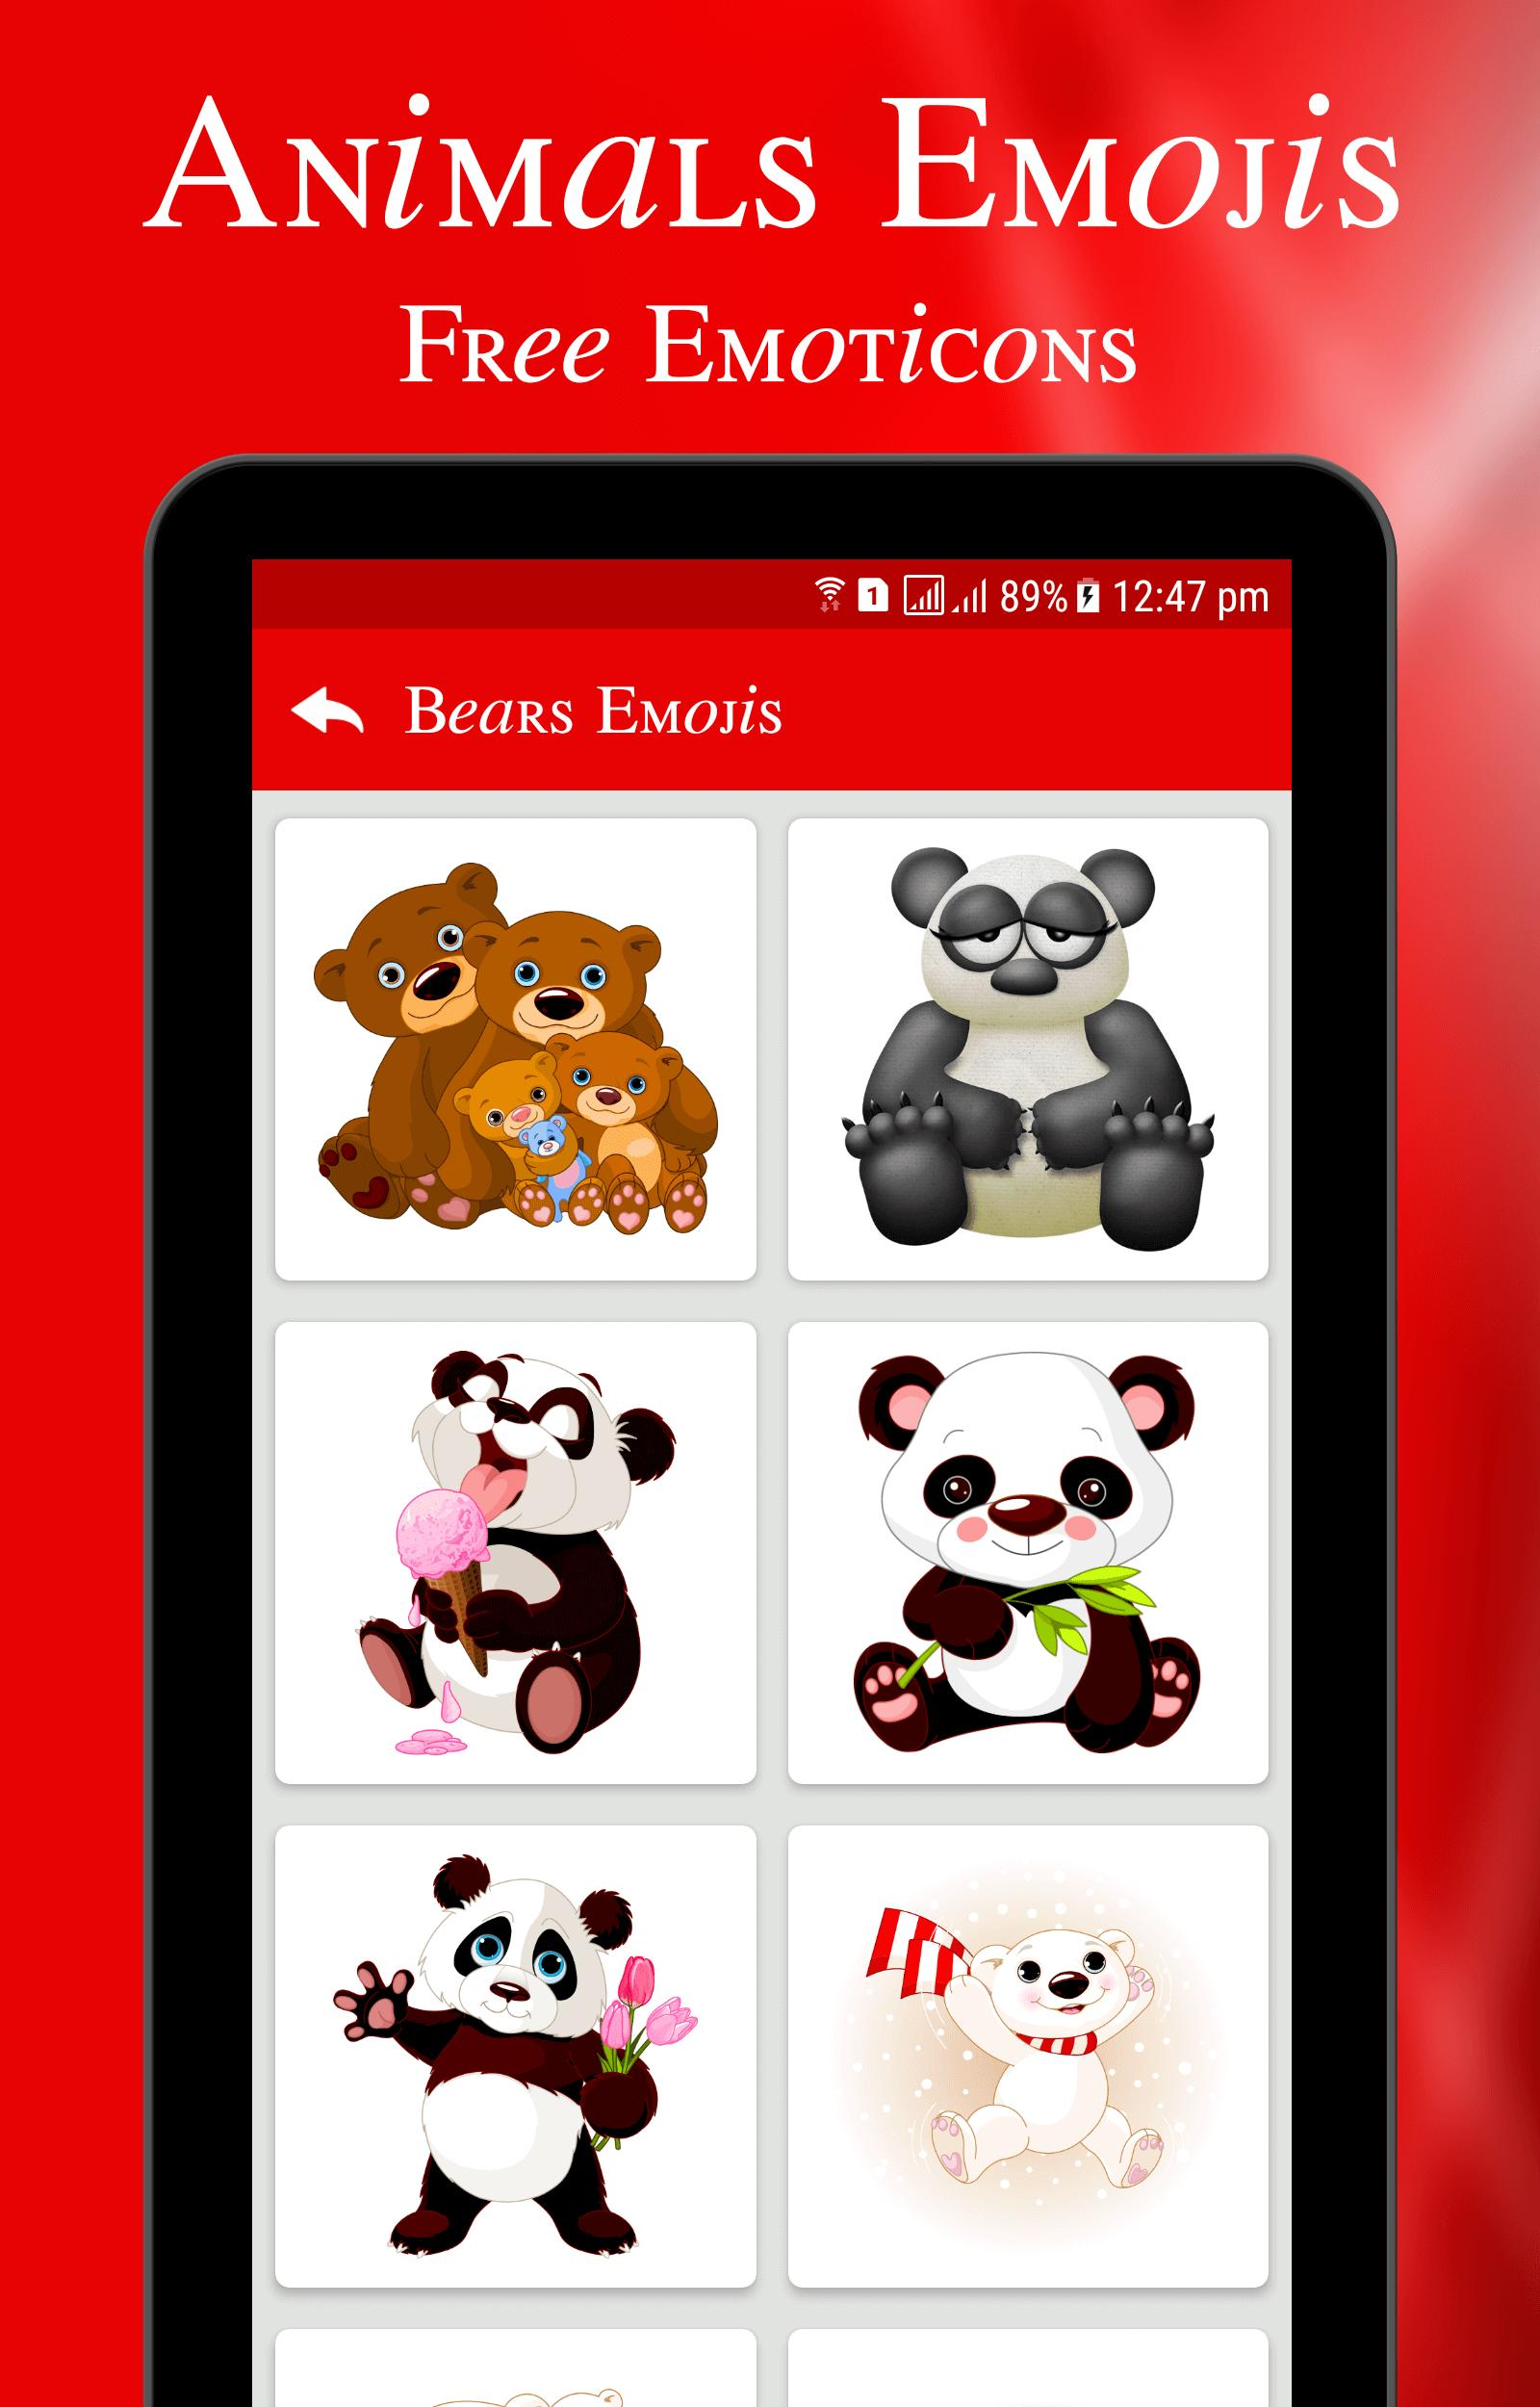 Animal Emojis Free Emoticons Stickers For Android Apk